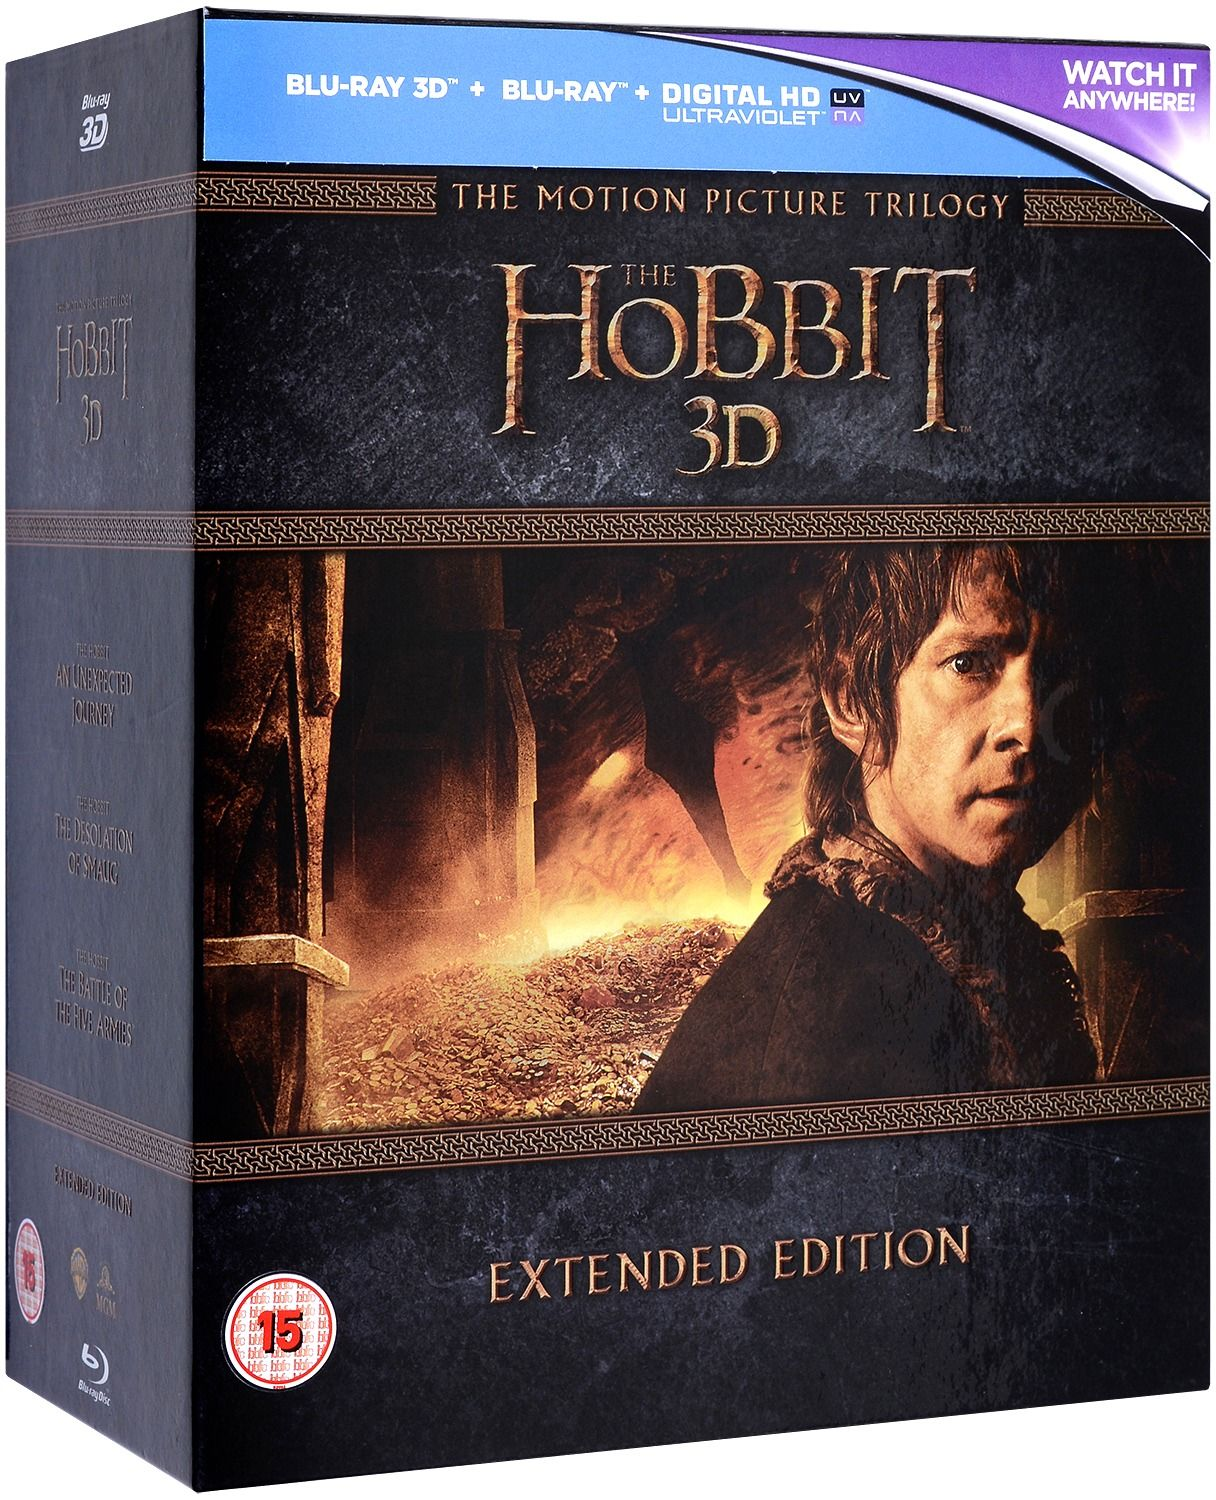 The Hobbit Trilogy - Extended Edition 3D+2D (Blu-Ray) - 1